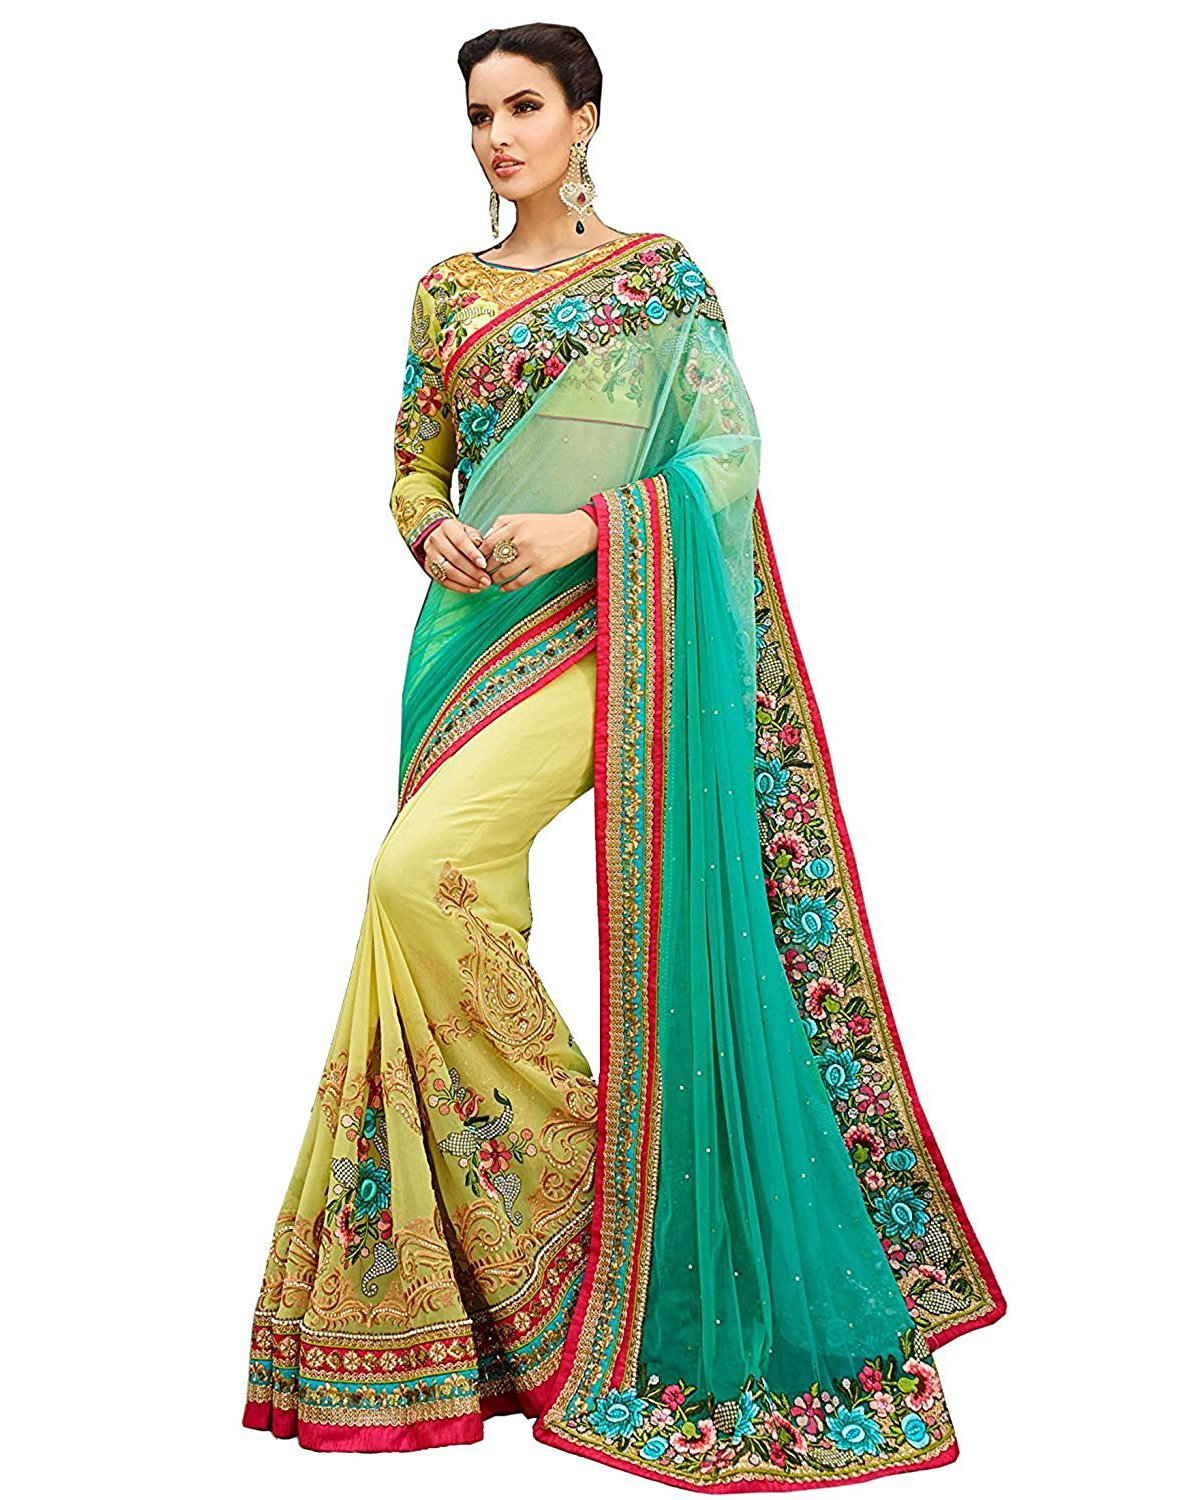 Femiss Georgette Green Saree With Blouse,Green,Free size by Femiss